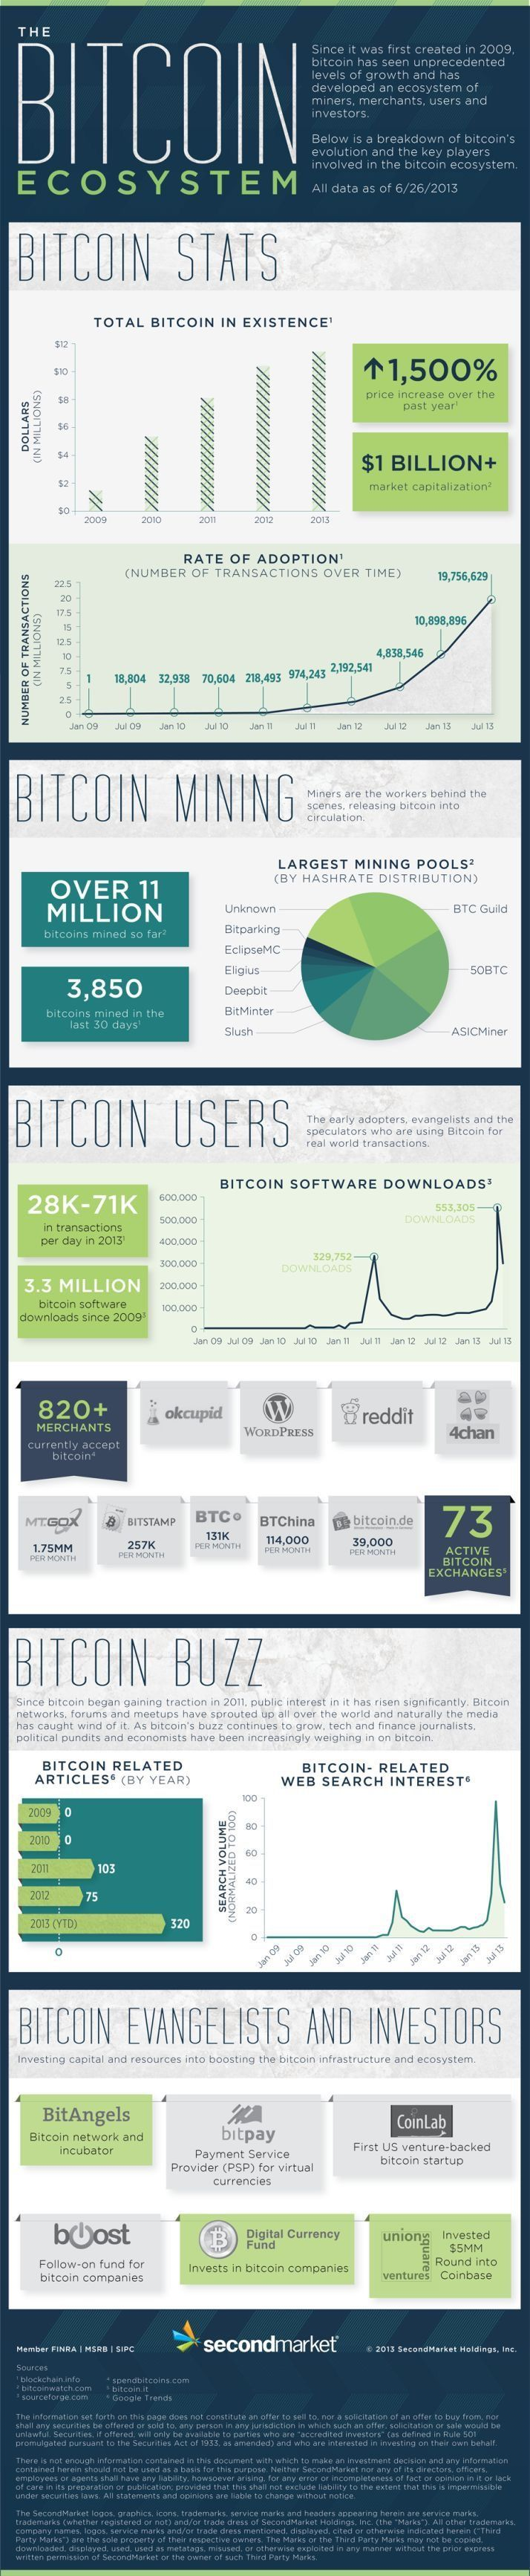 Bitcoin guide for beginners. Invest your Bitcoin on this site #bitcoin #crytocurrency #infographic #affiliate